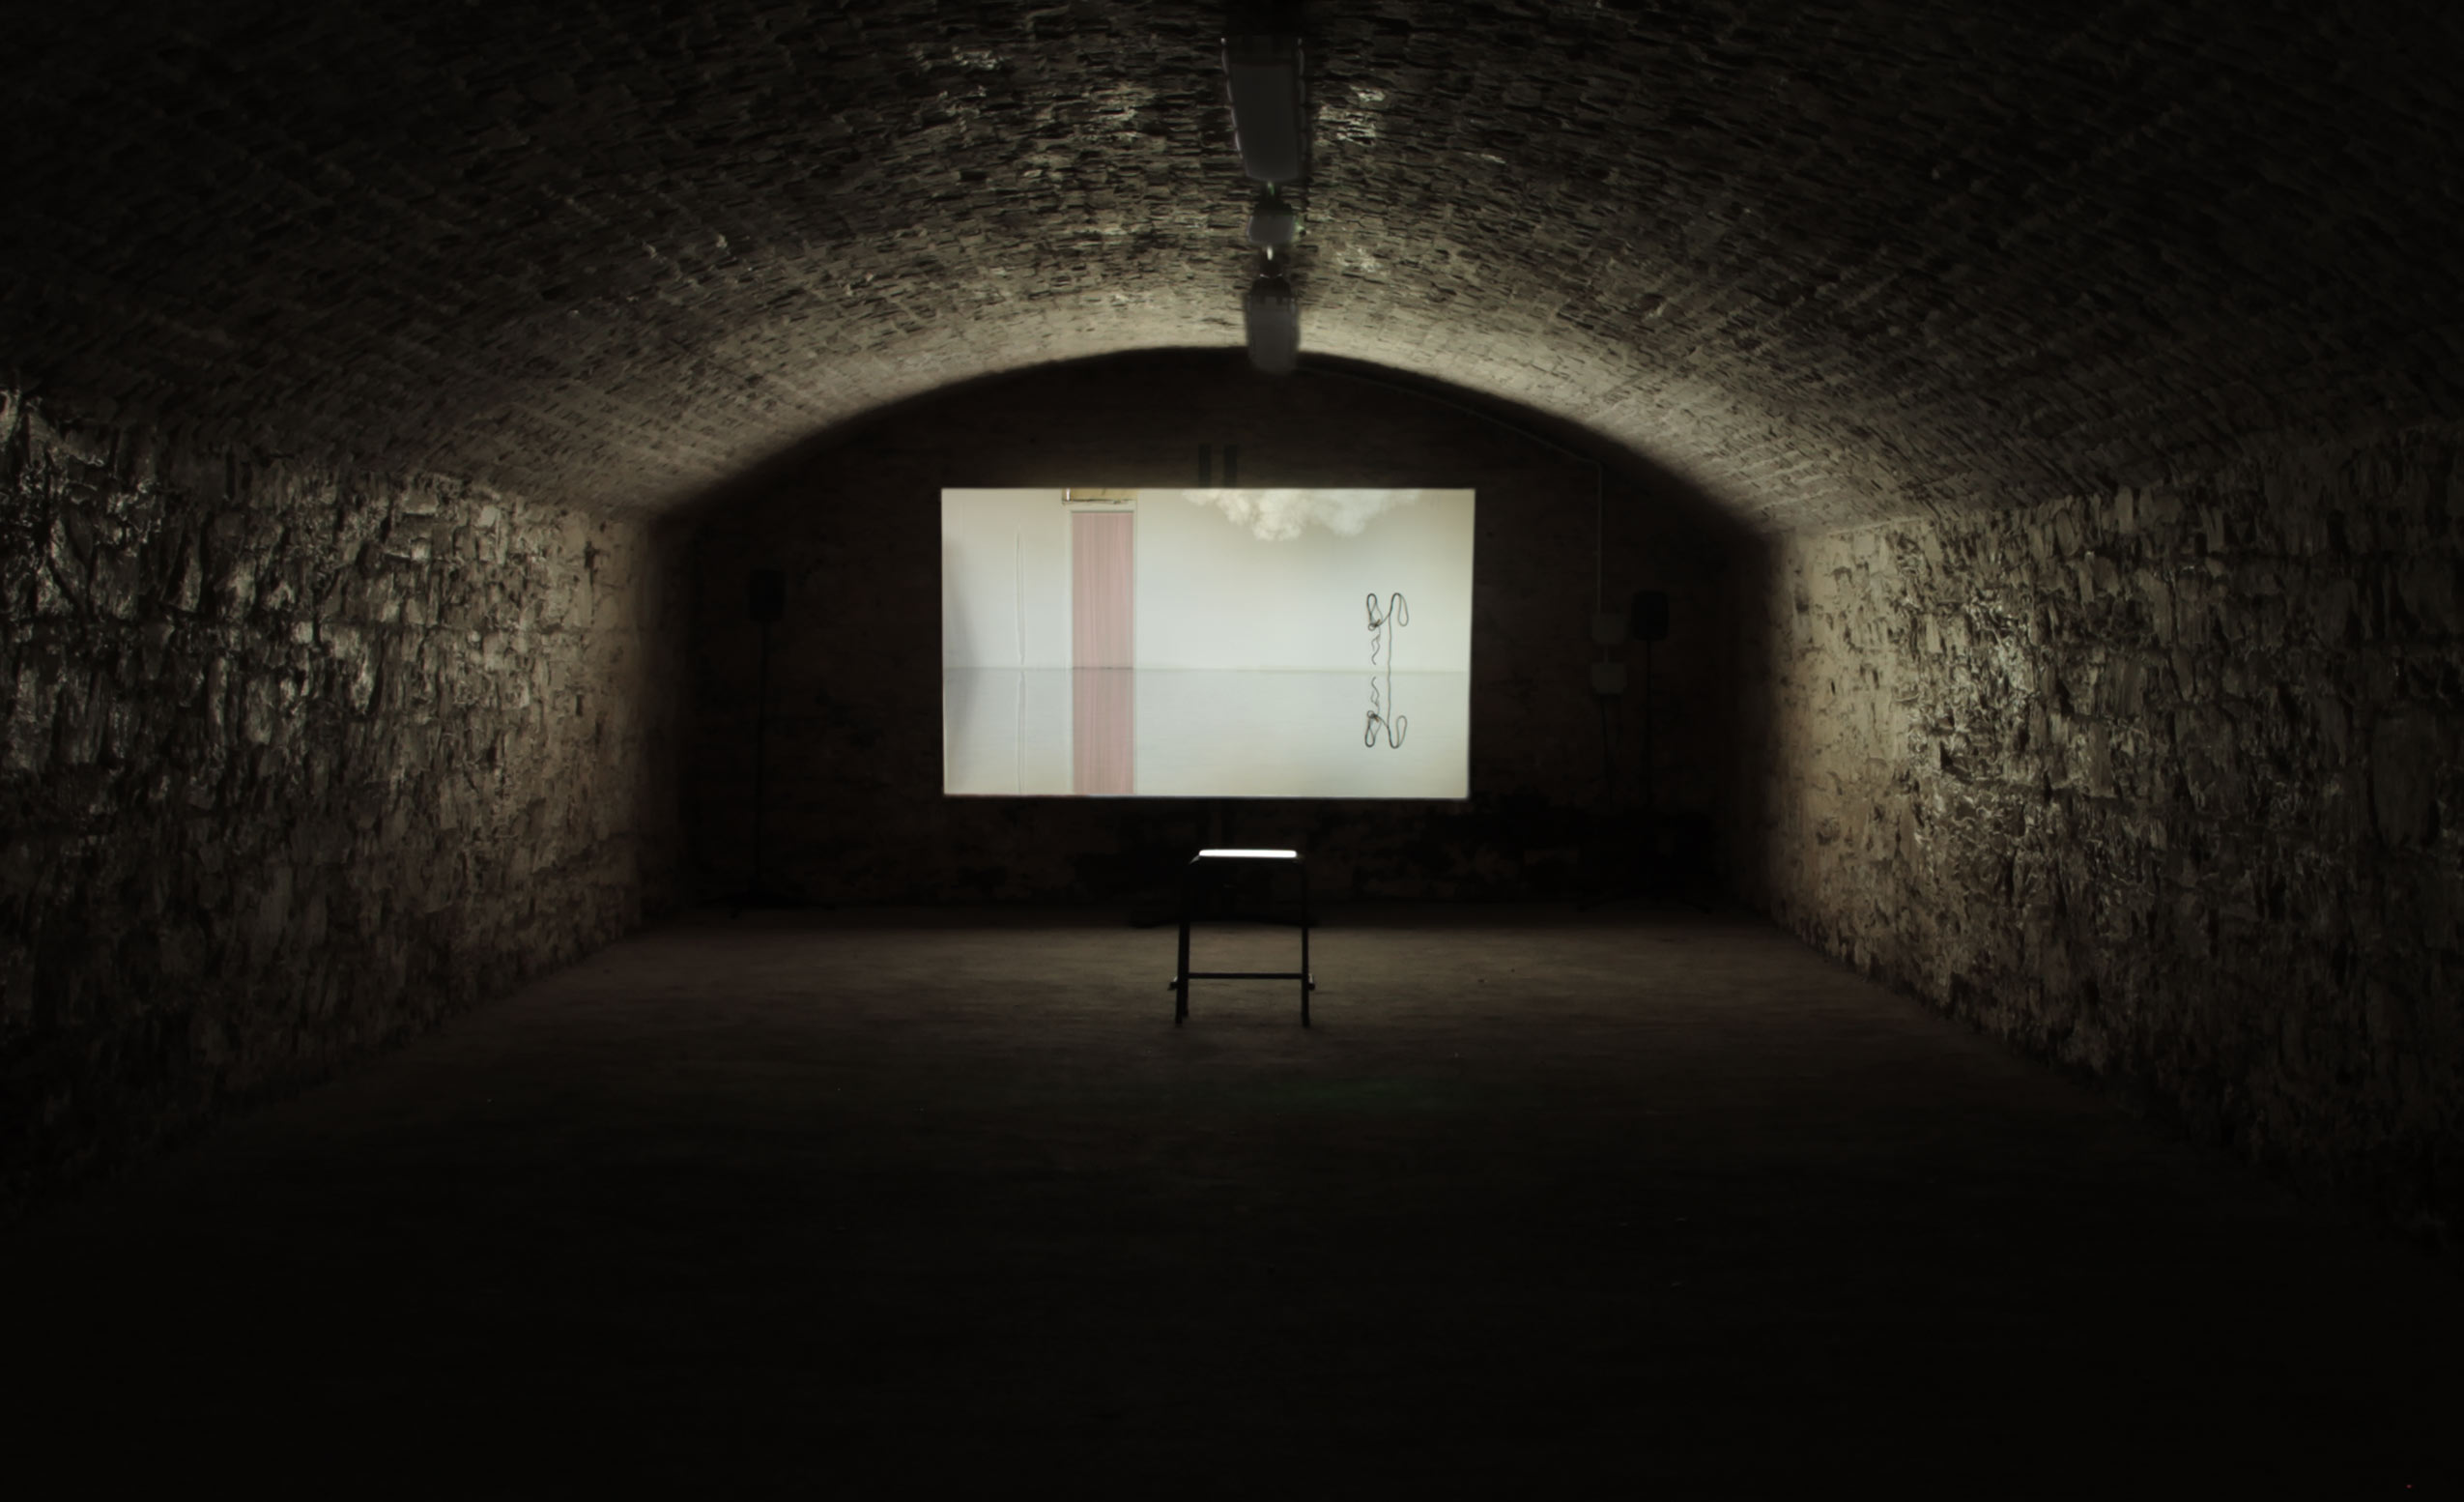 Passages, Sounds from a Safe Harbour, Cork, 2015. Curated by Mary Hickson & Bryce Dessner.